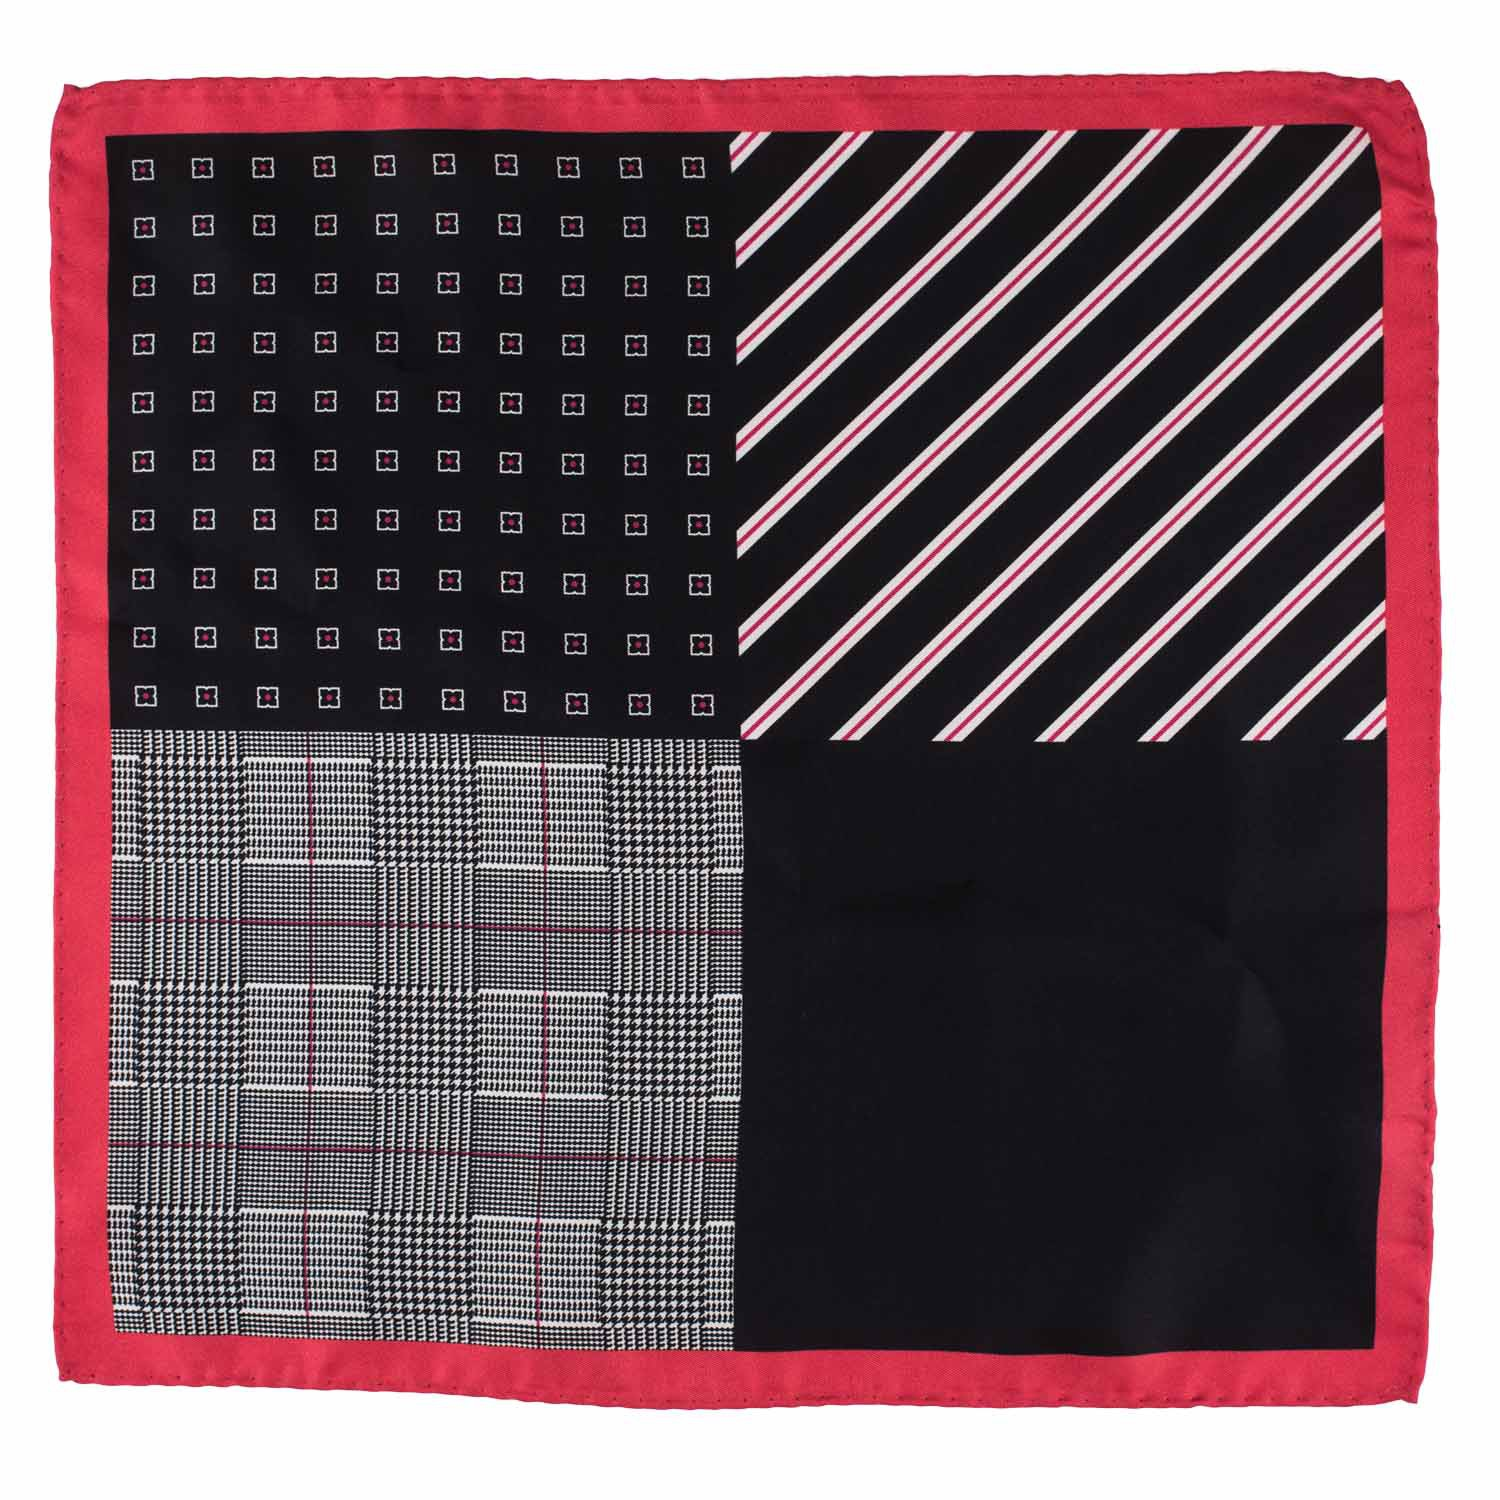 Four Square Printed Black and Red Silk Pocket Square For Men By The Tie Hub